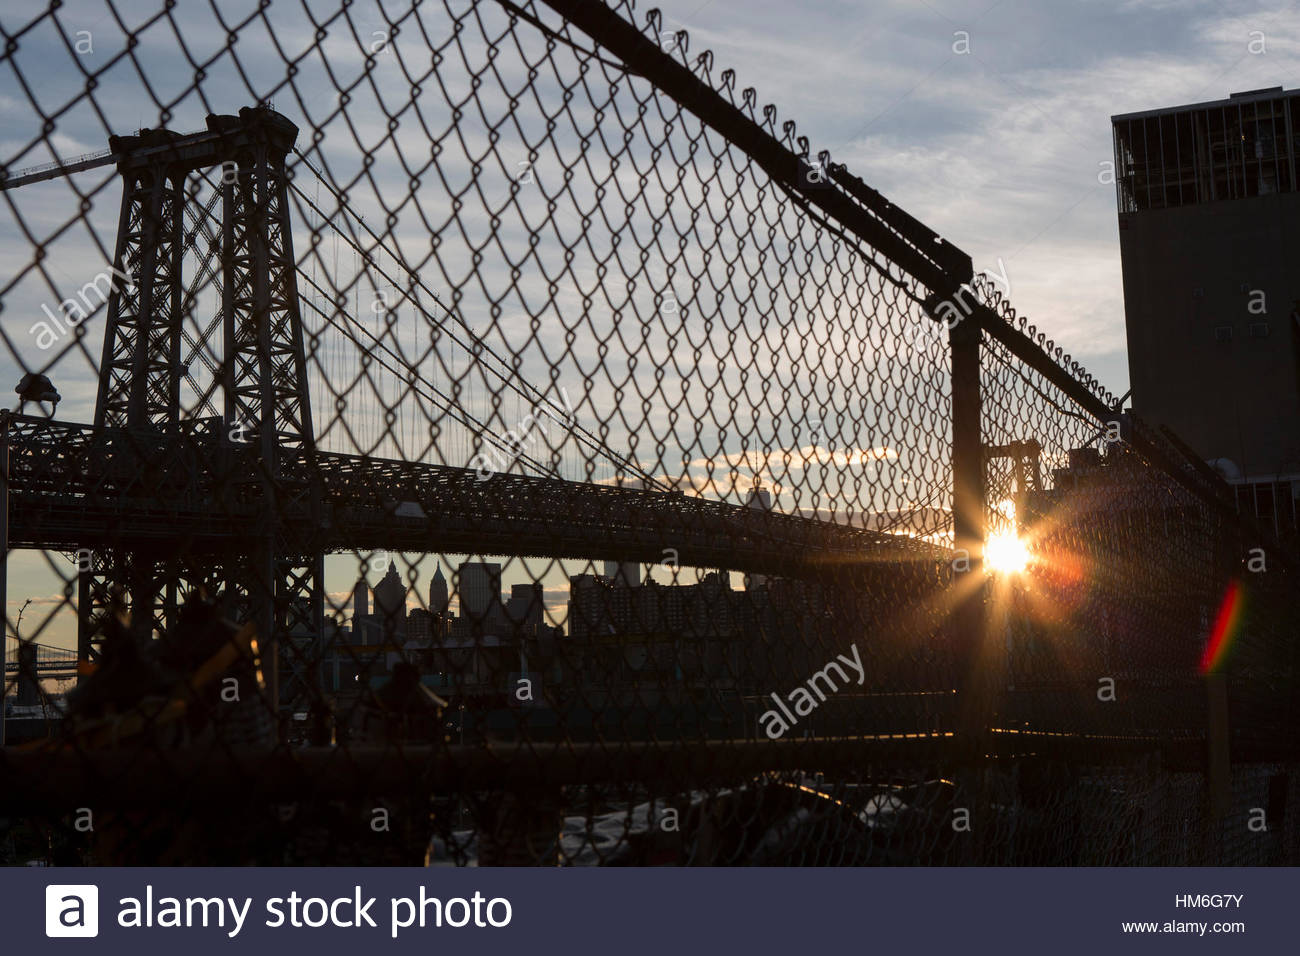 Cityscape Behind Fence Stock Photos Amp Cityscape Behind